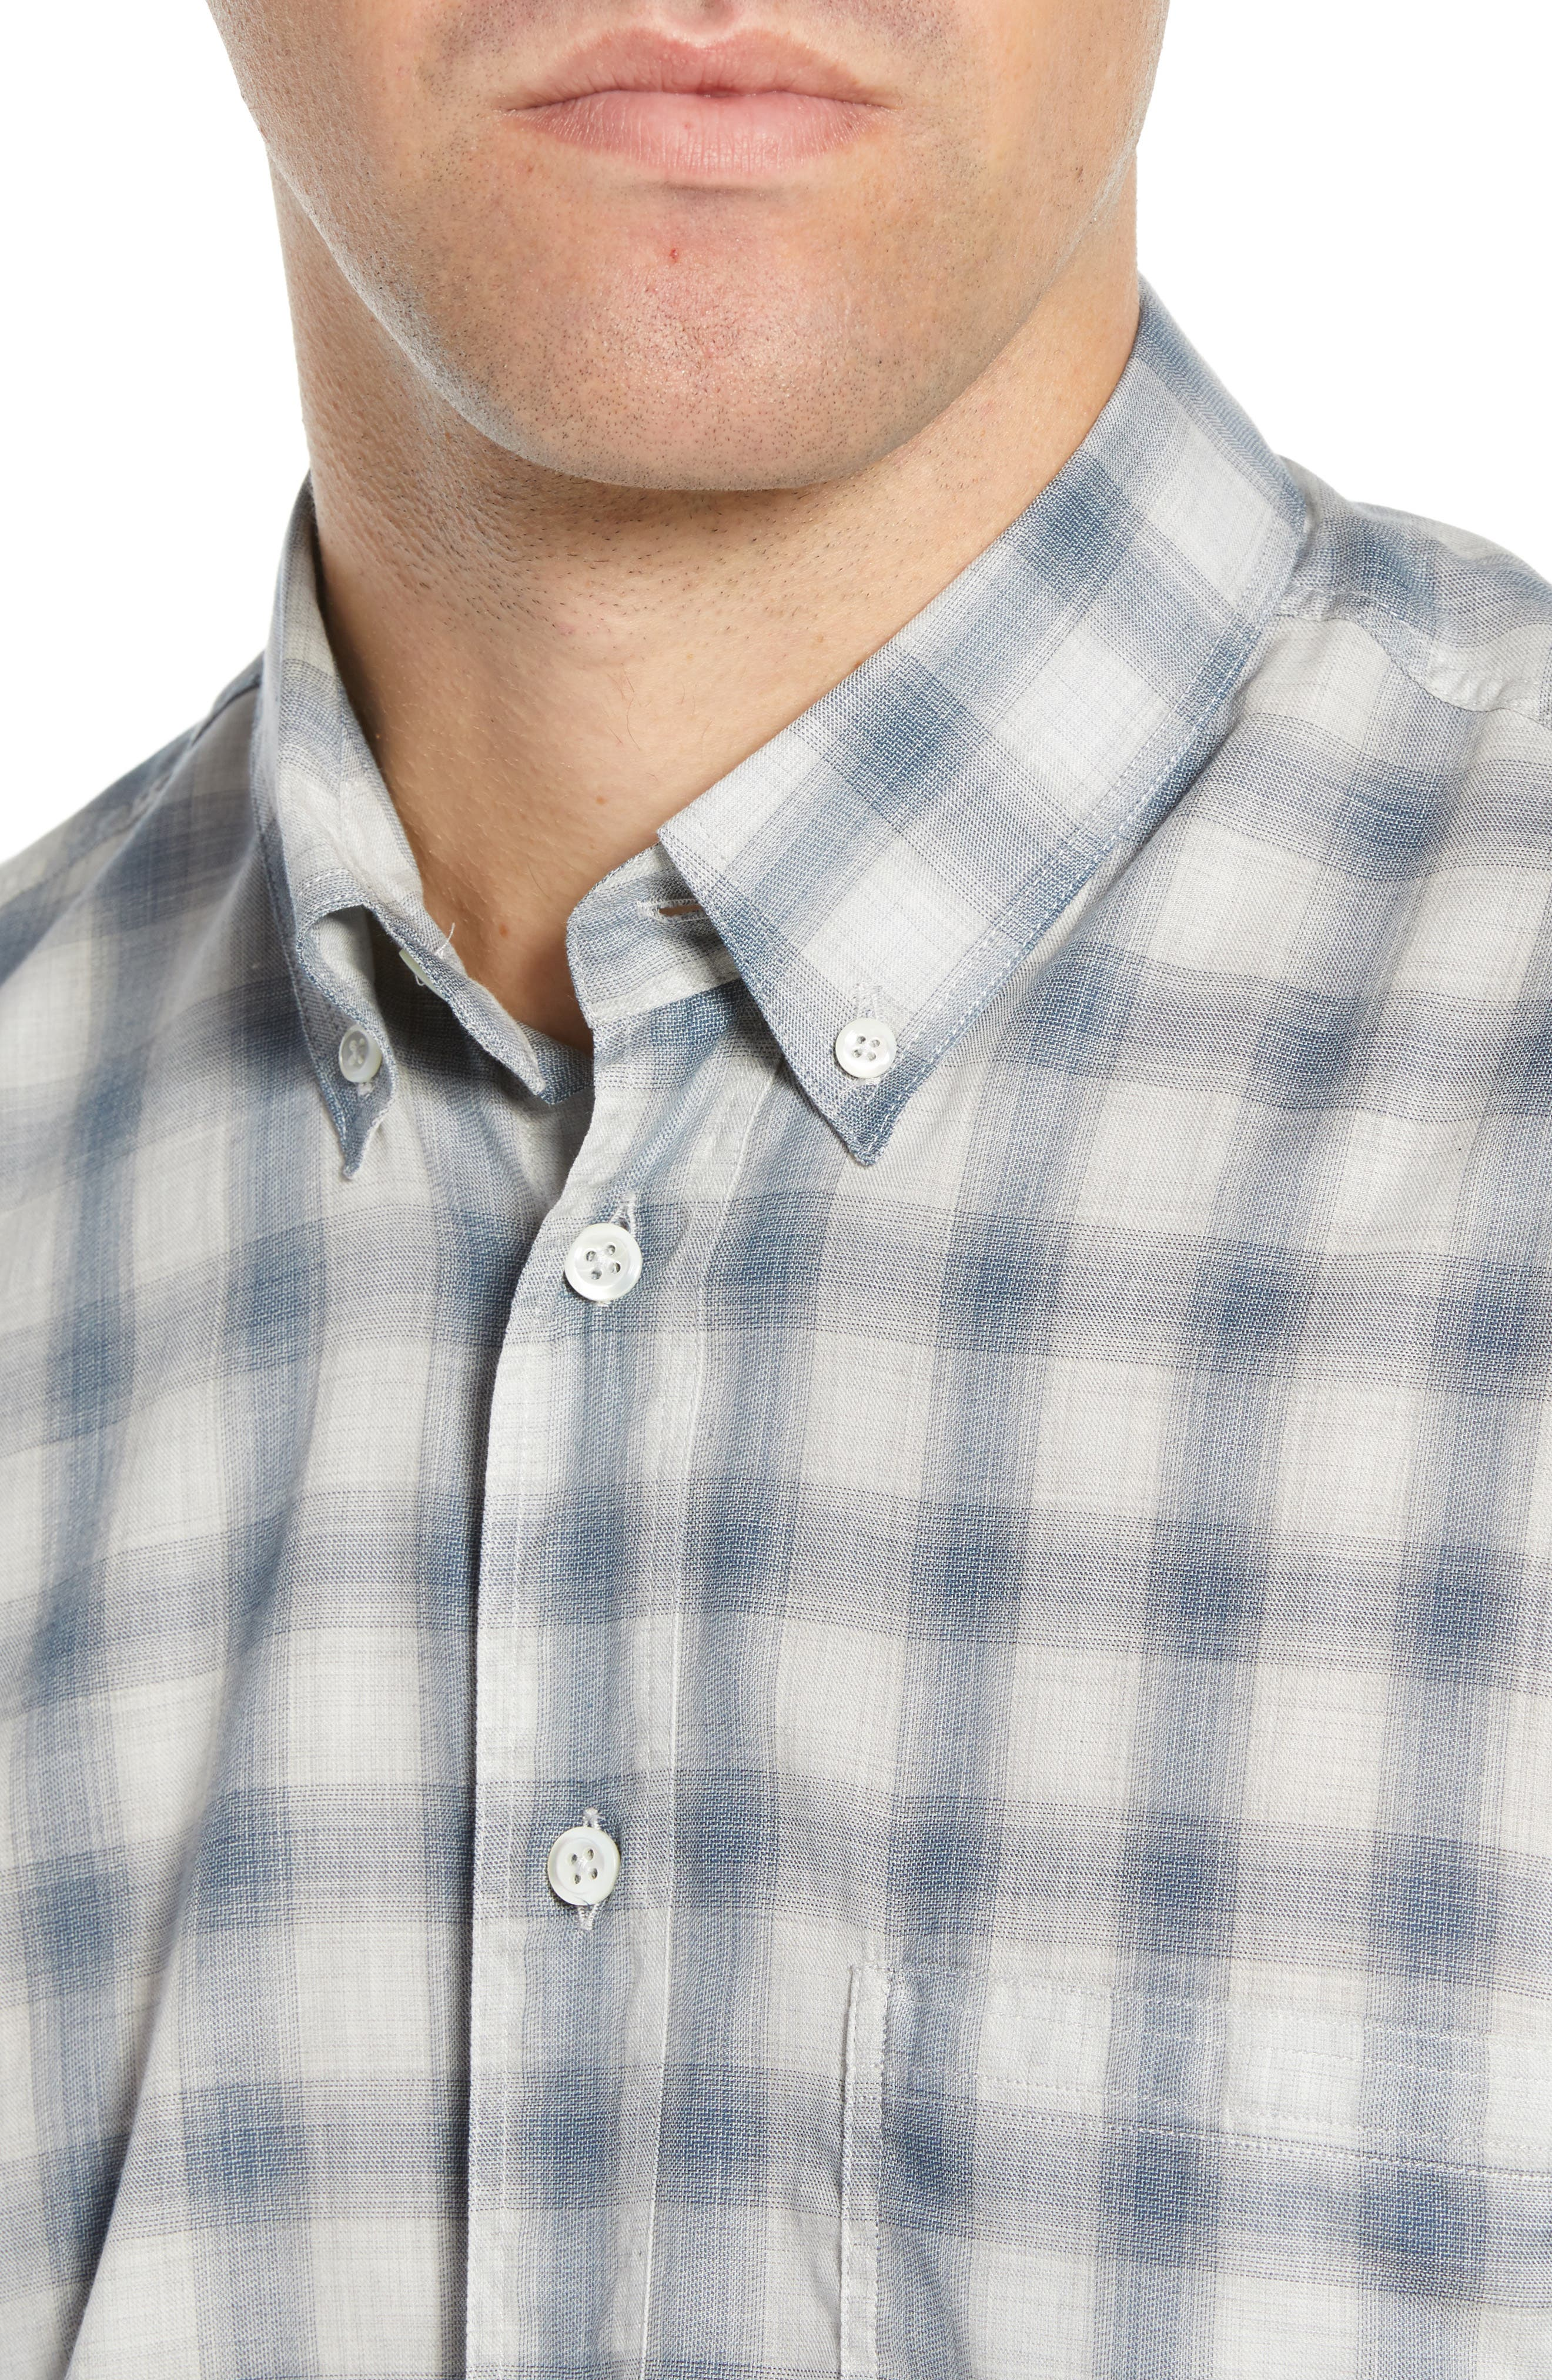 Tuscumbia Regular Fit Pattern Sport Shirt,                             Alternate thumbnail 2, color,                             BLUE/ GREY